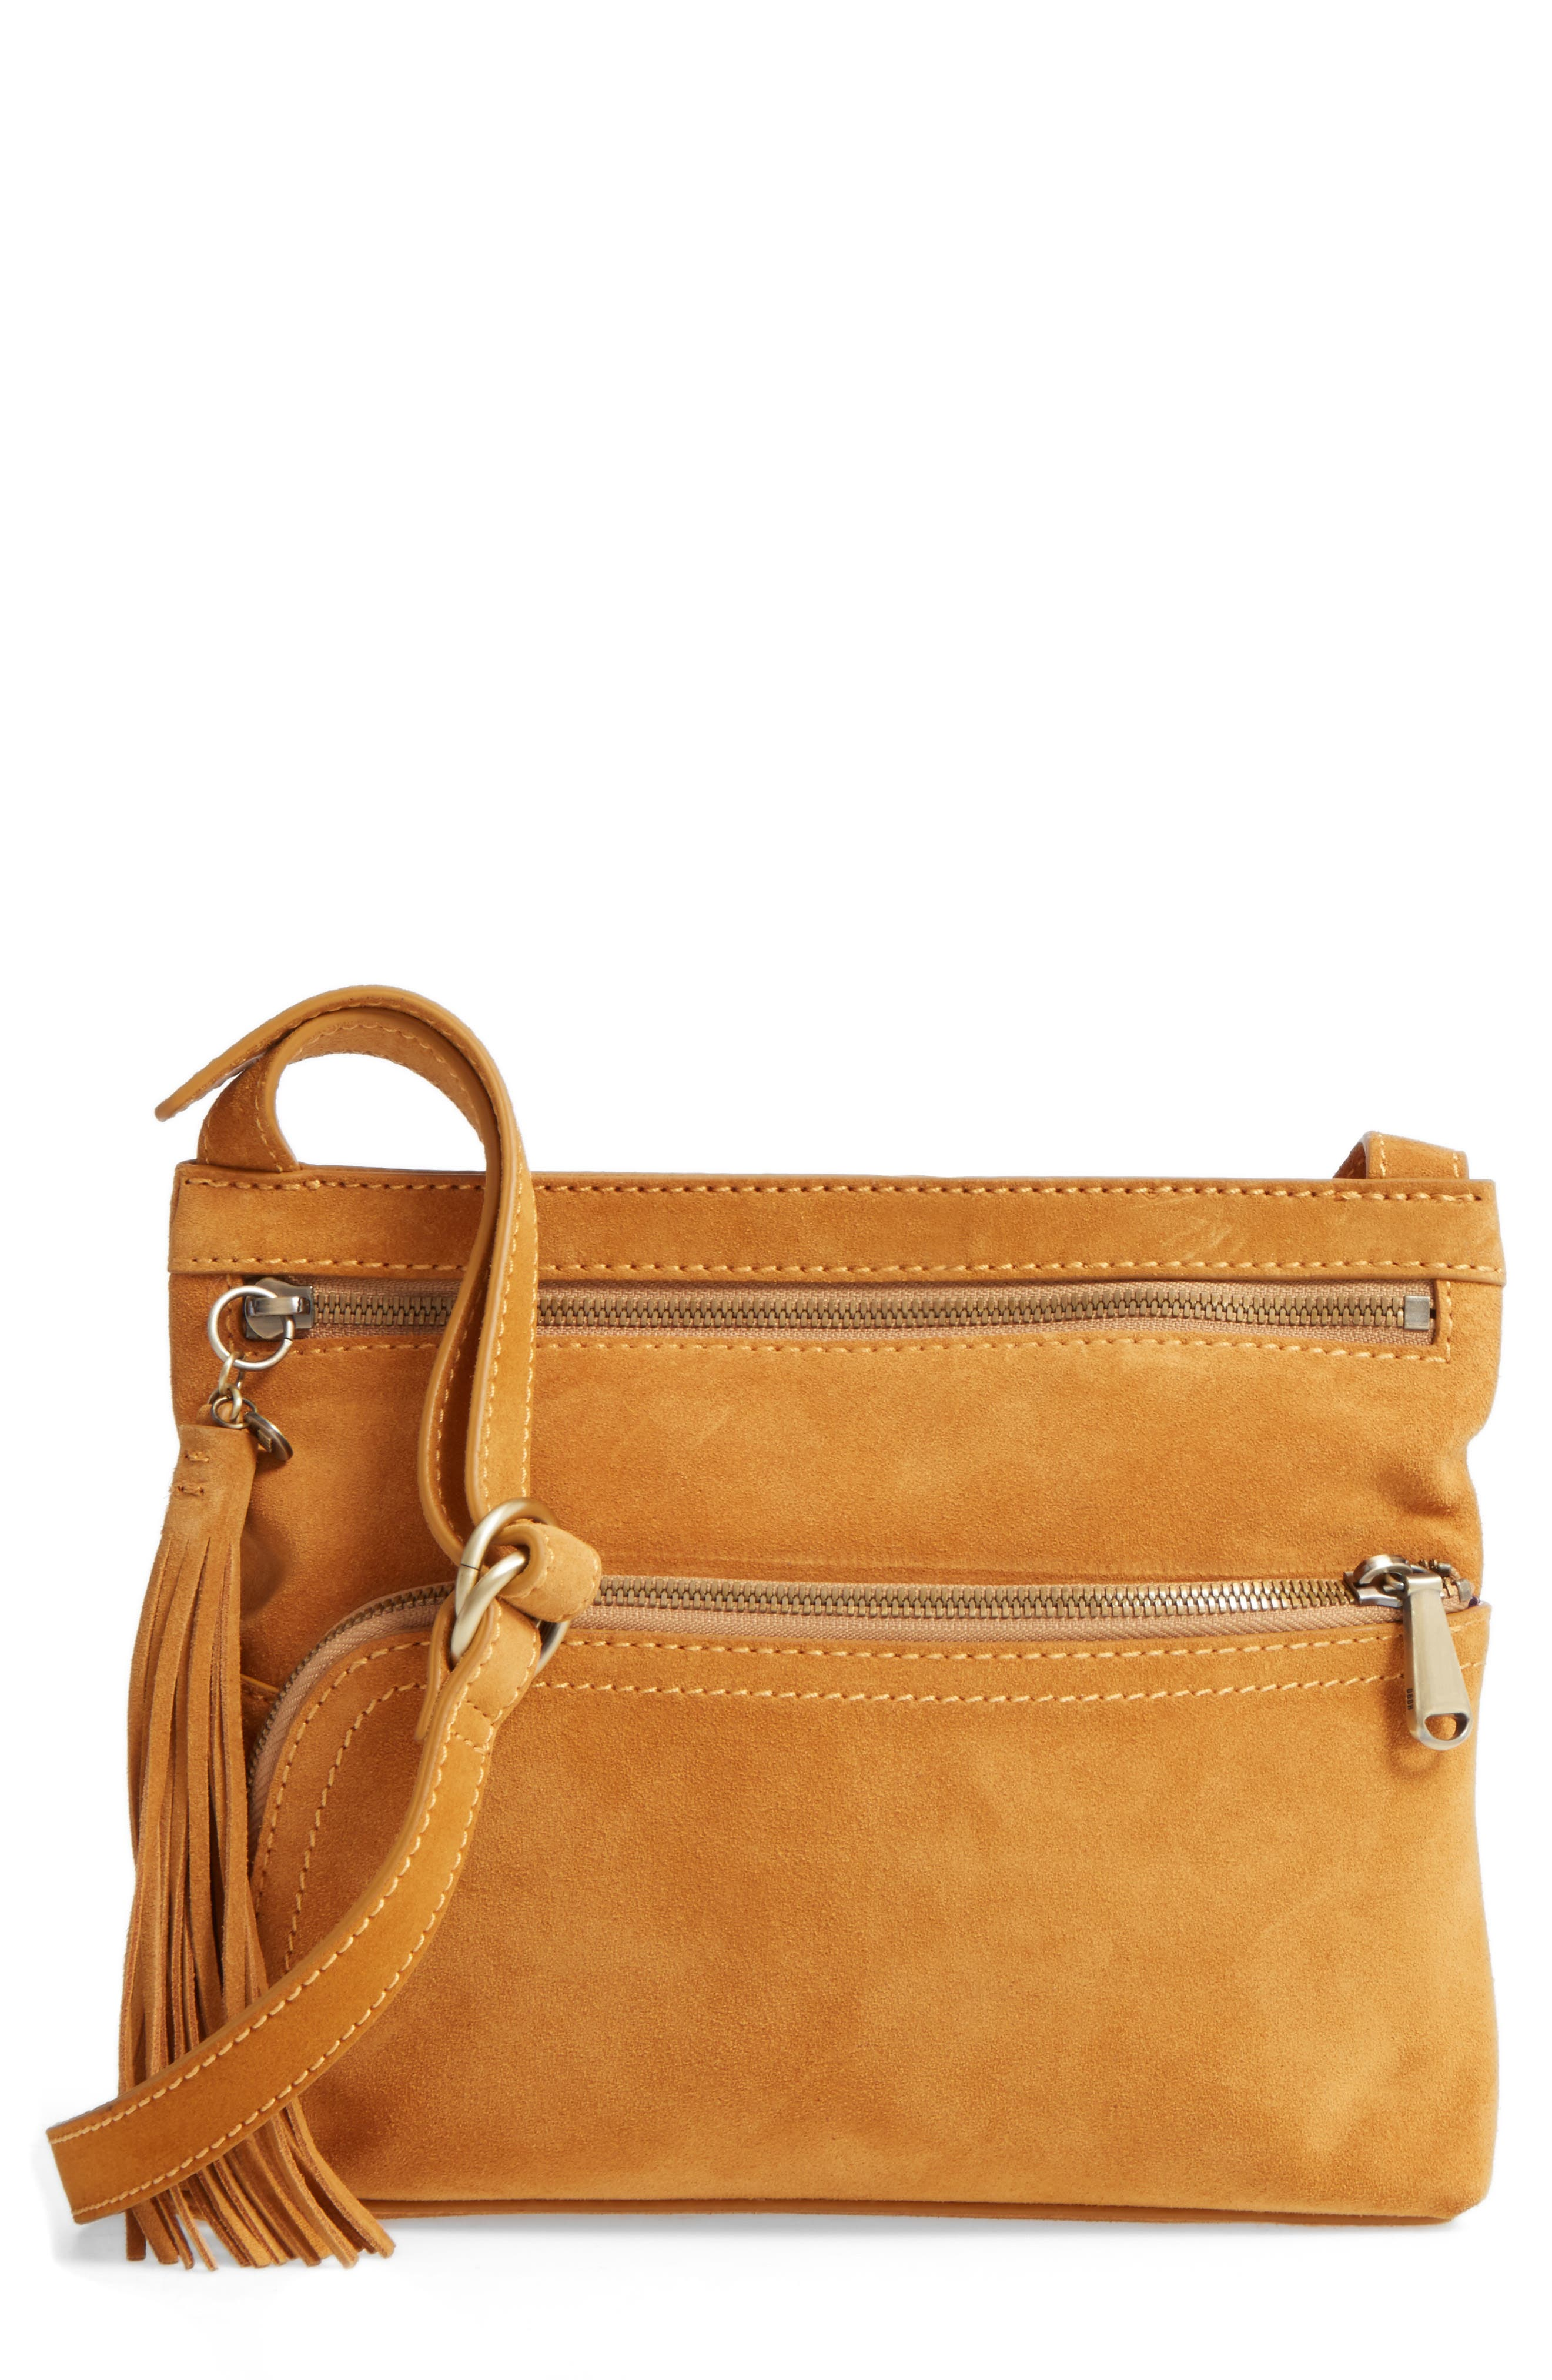 Alternate Image 1 Selected - Hobo Cassie Calfskin Suede Crossbody Bag